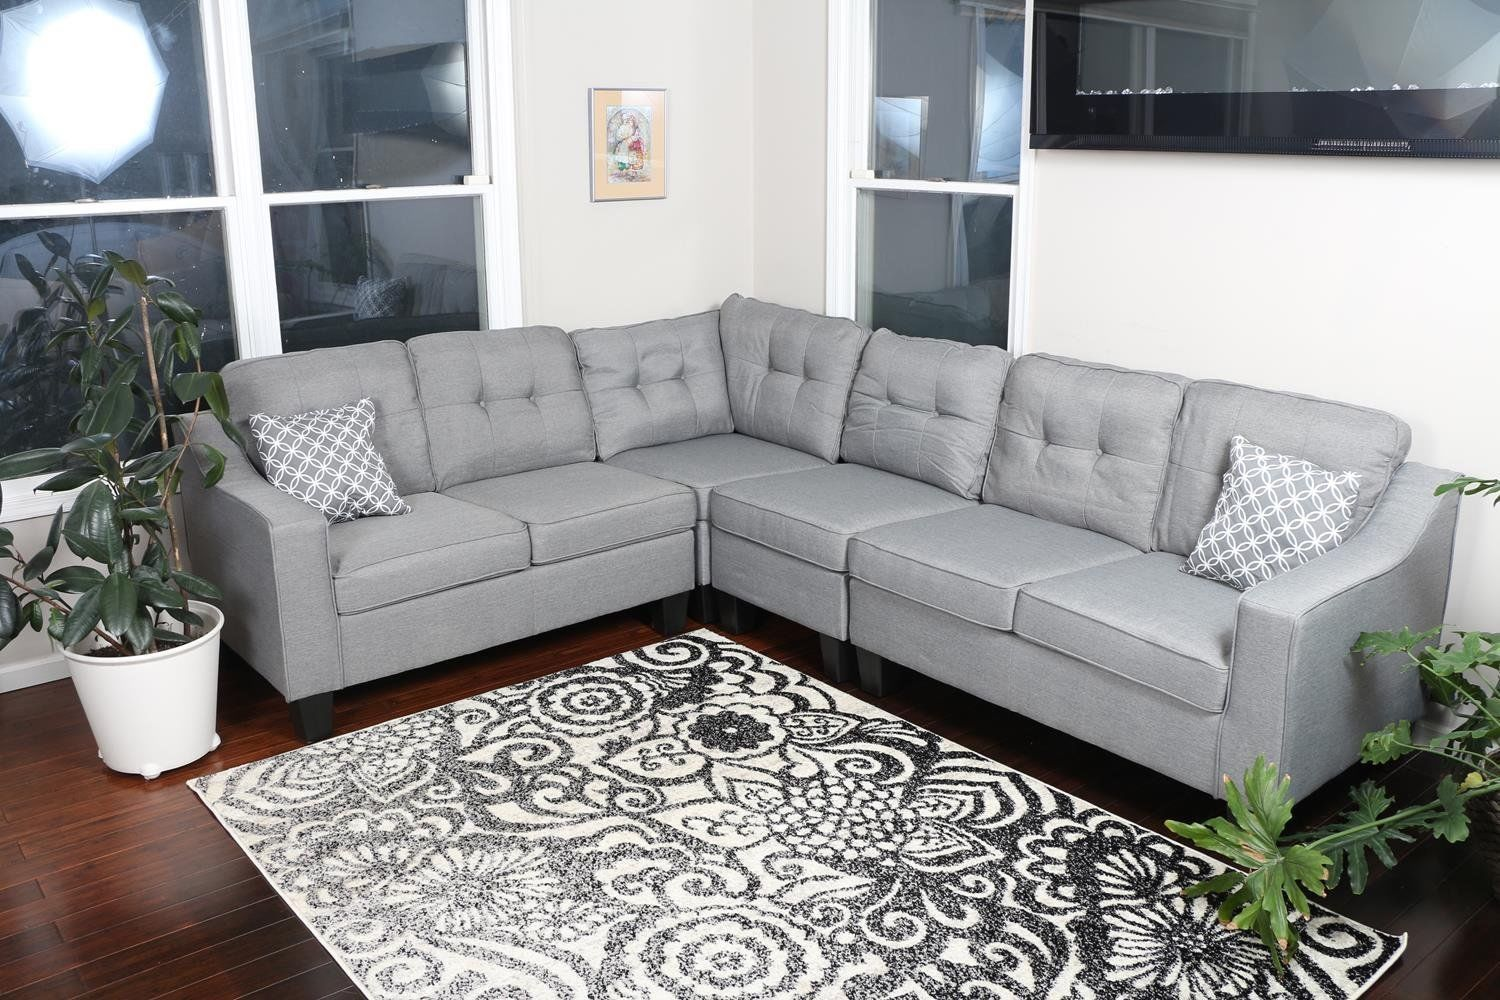 Large Reversible Light Grey 4pc Fabric Sectional Sofa Living Room